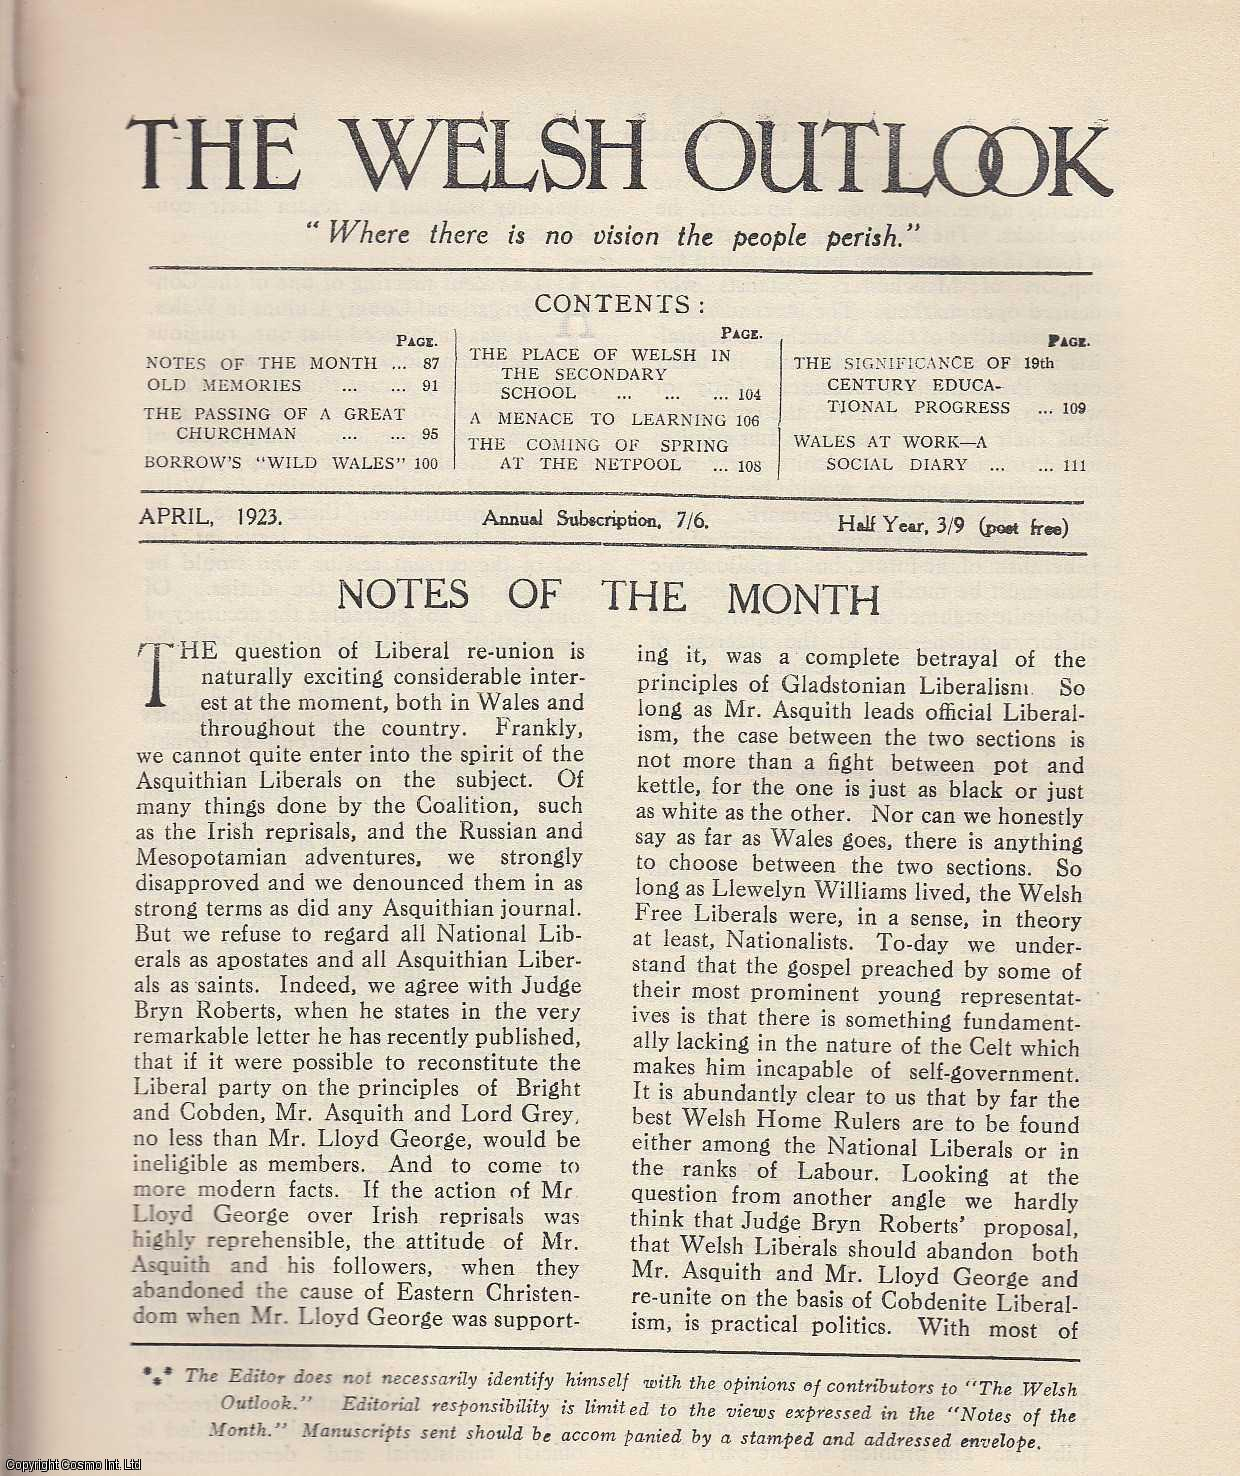 The Welsh Outlook. A Monthly Journal of National Social Progress. April, 1923. Contains; The Passing of a Great Churchman by Emeritus Professor T. Witton Davies; Borrow's Wild Wales by Professor H. Wright; The Place of Welsh in The Secondary School By Edmund D. Jones; A Menace to Learning by Mrs. Abel Jones; The Coming of Spring at The Netpool by F.L. Lowther; The Significance of 19th. Century Educationaal Progress by Professor Foster Watson; Wales at Work - A Social Diary., Thomas Jones (Editor)